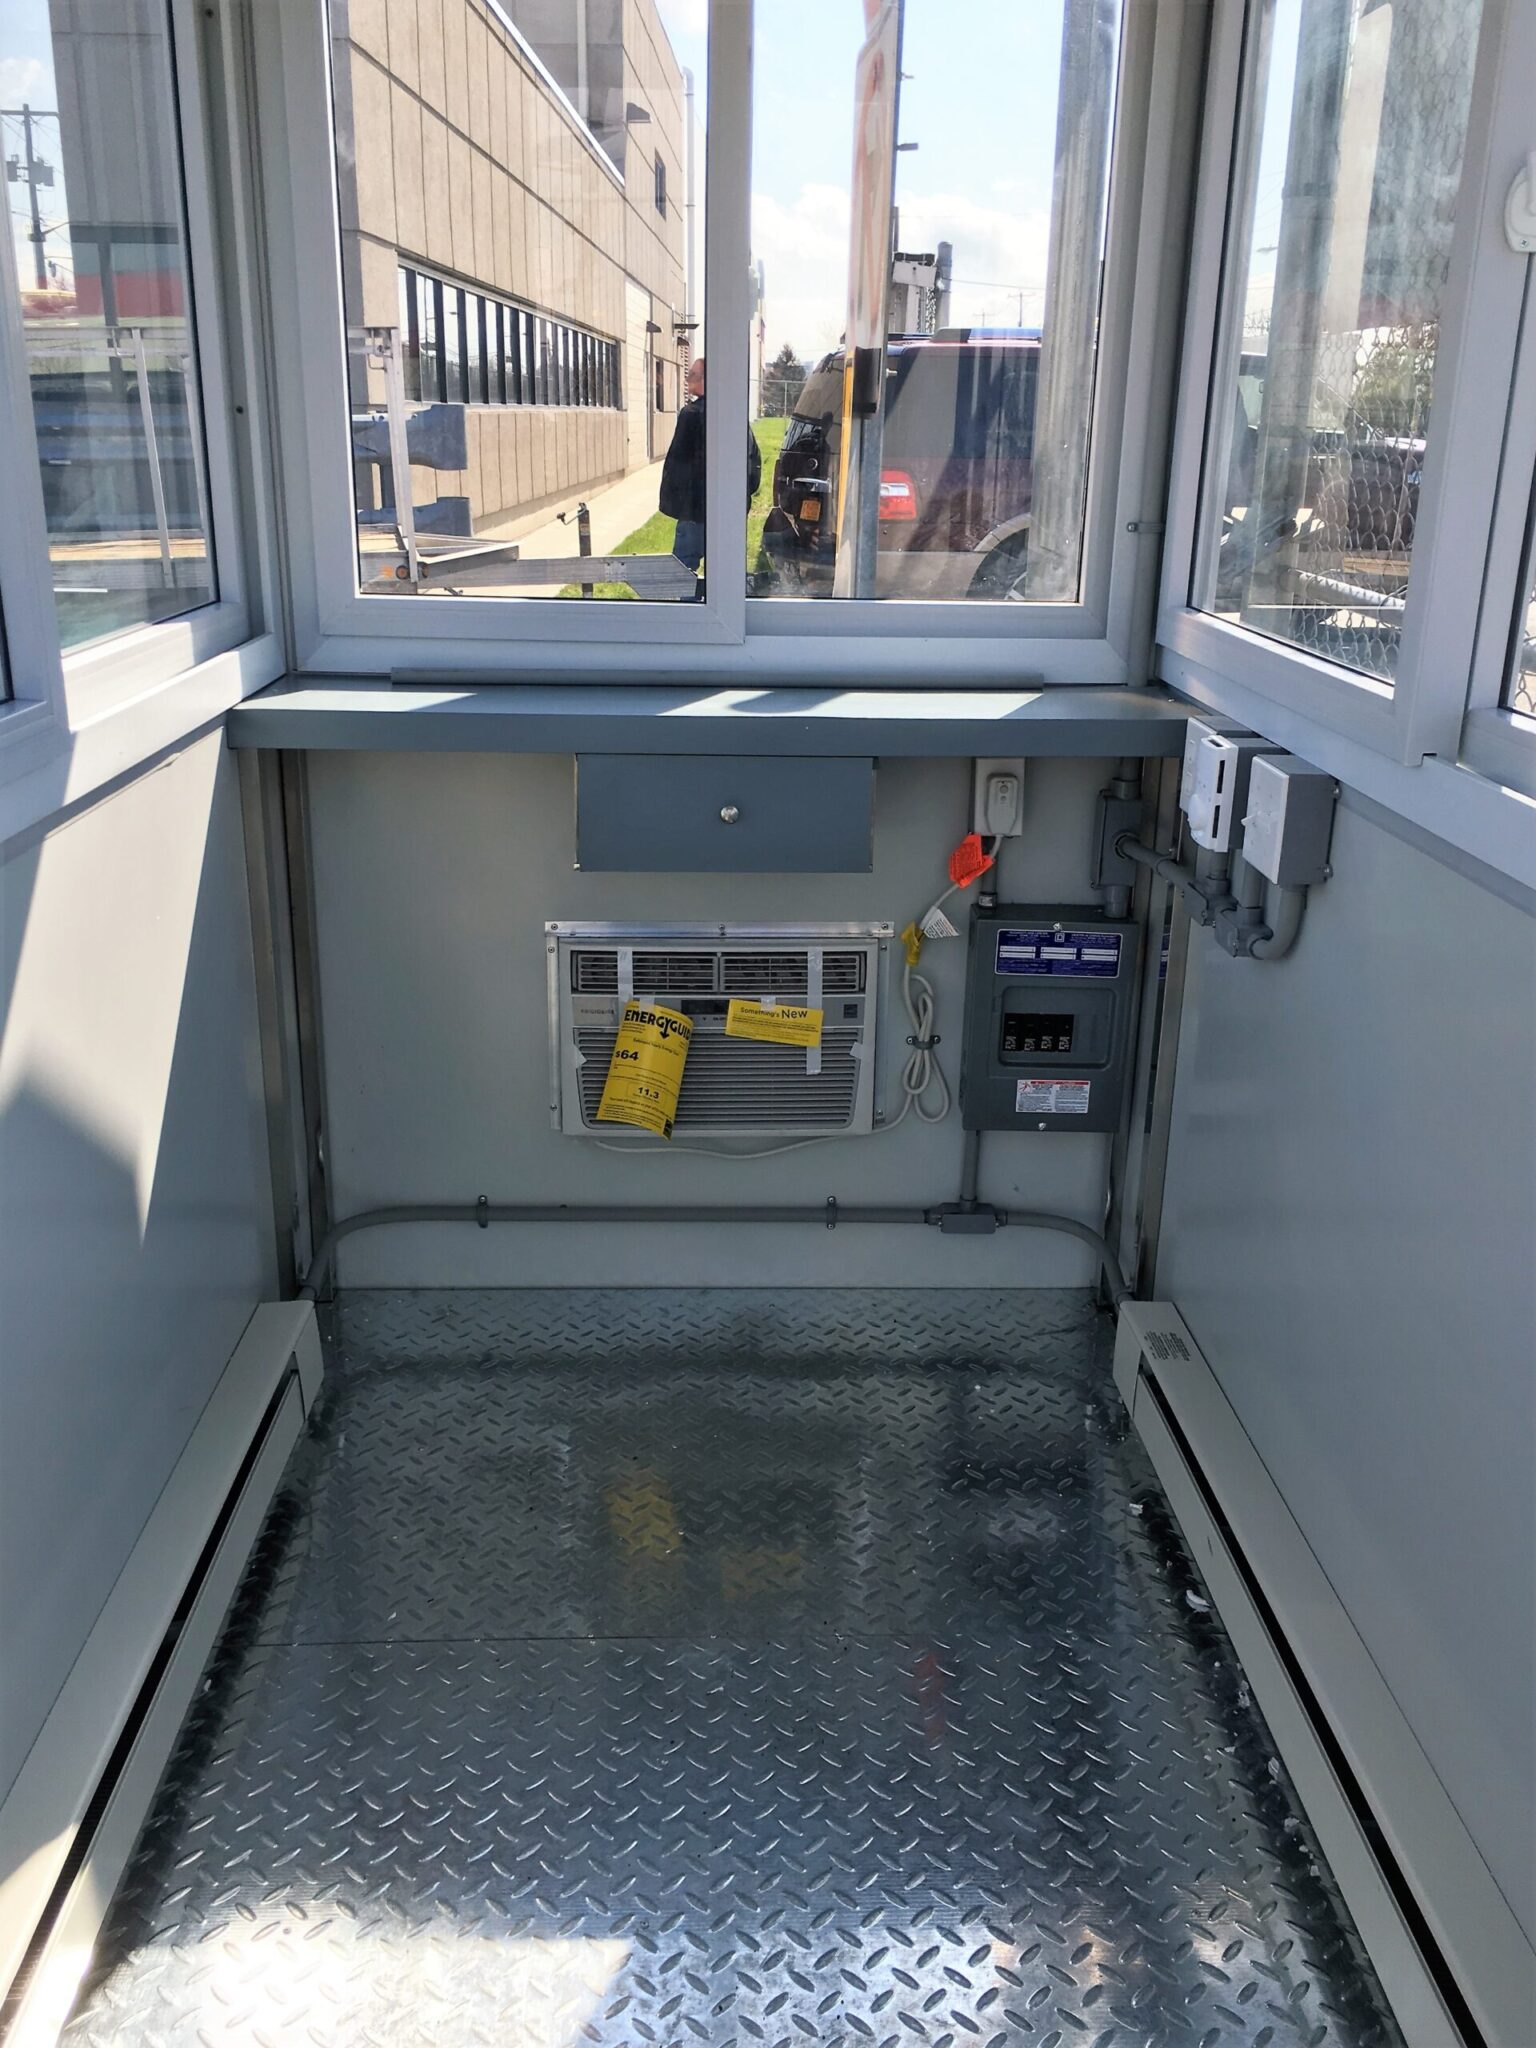 4x6 Booth interior with Built-in AC, Baseboard Heaters, and Breaker Panel Box